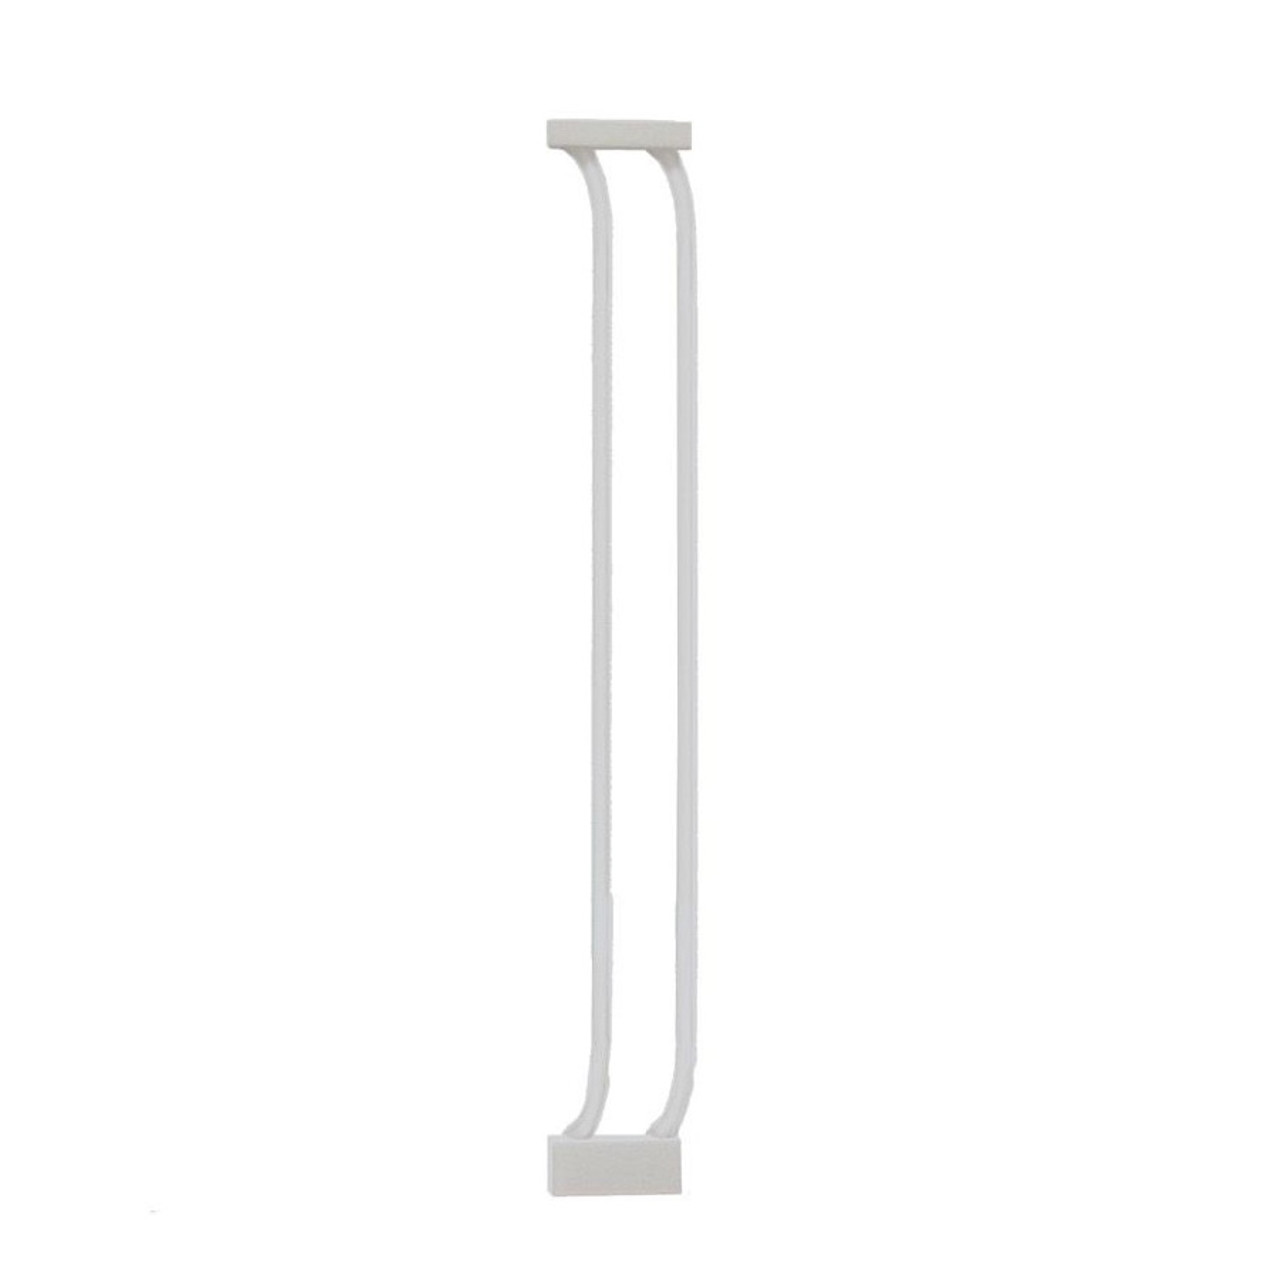 Dreambaby Chelsea Gate Extension 9cm White